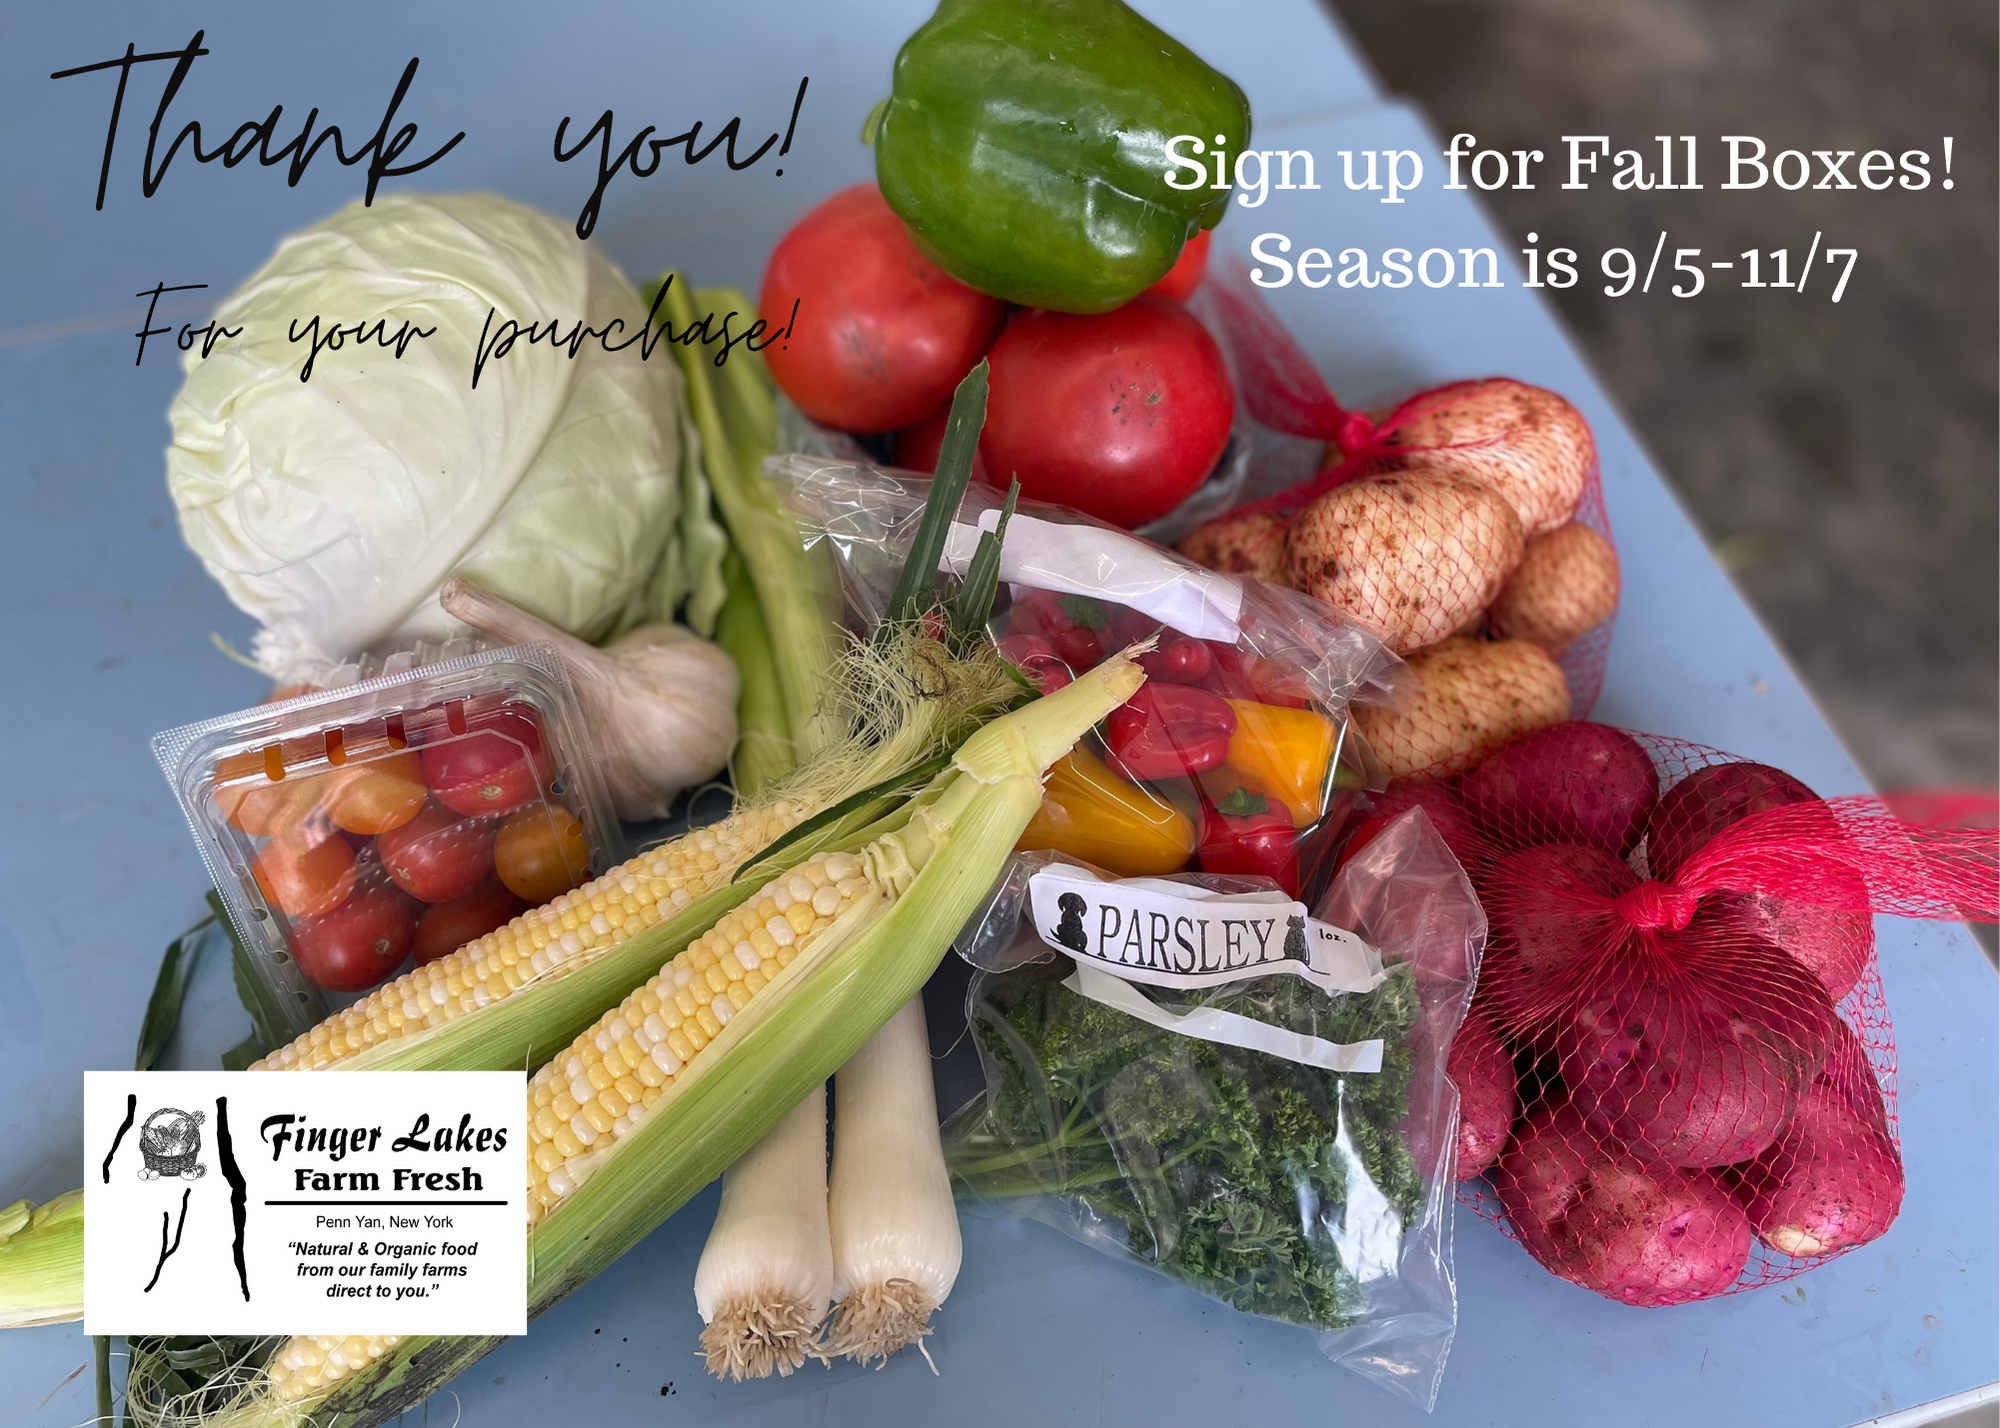 Fall is in the air!  Are you signed up to keep getting Veggies!?